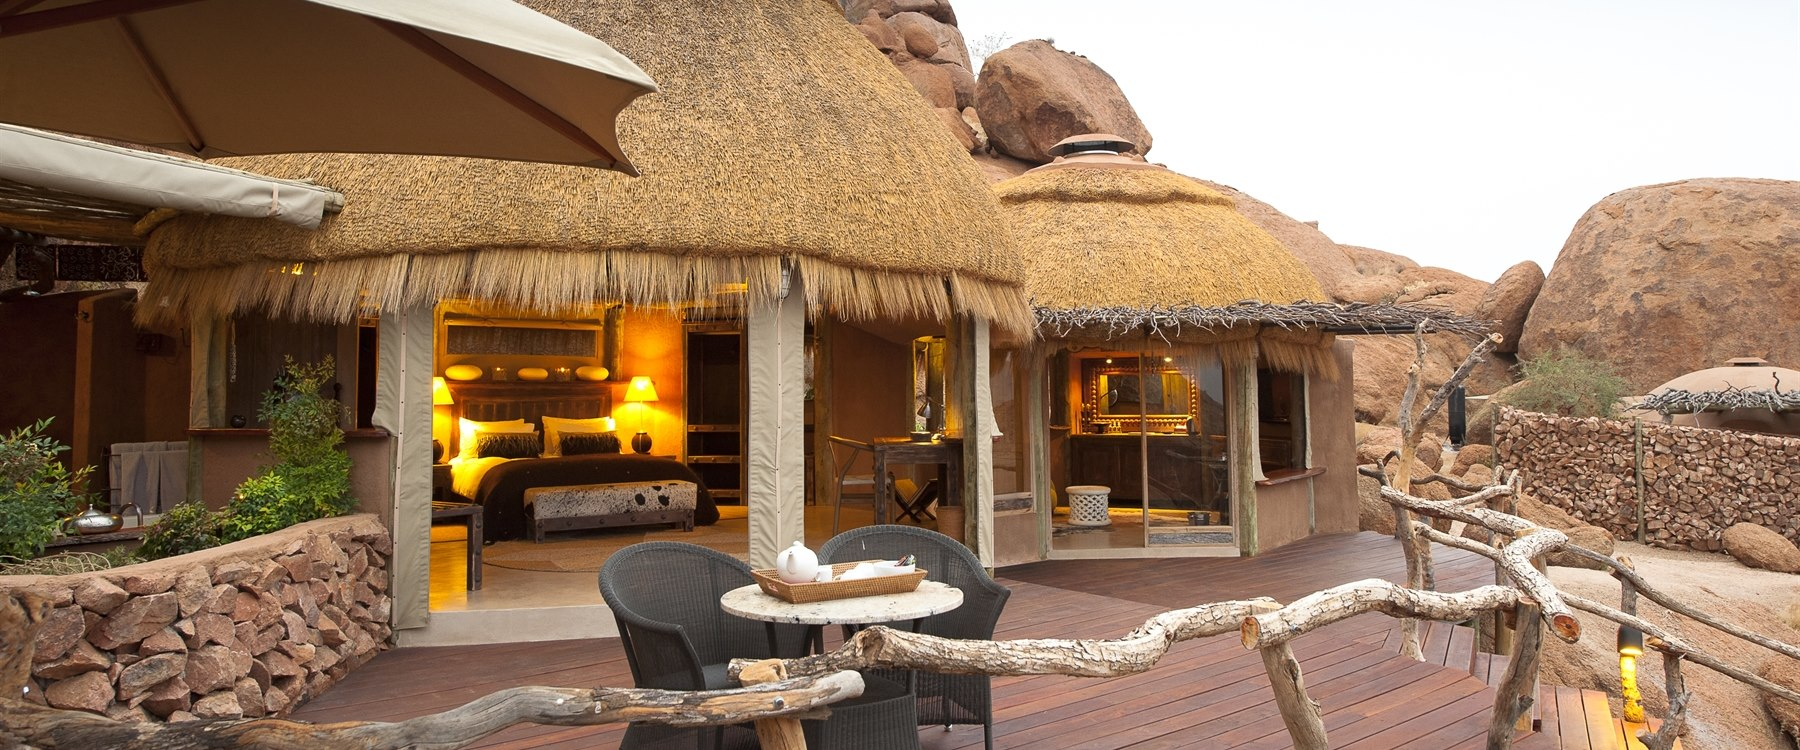 Suite exterior at Camp Kipwe